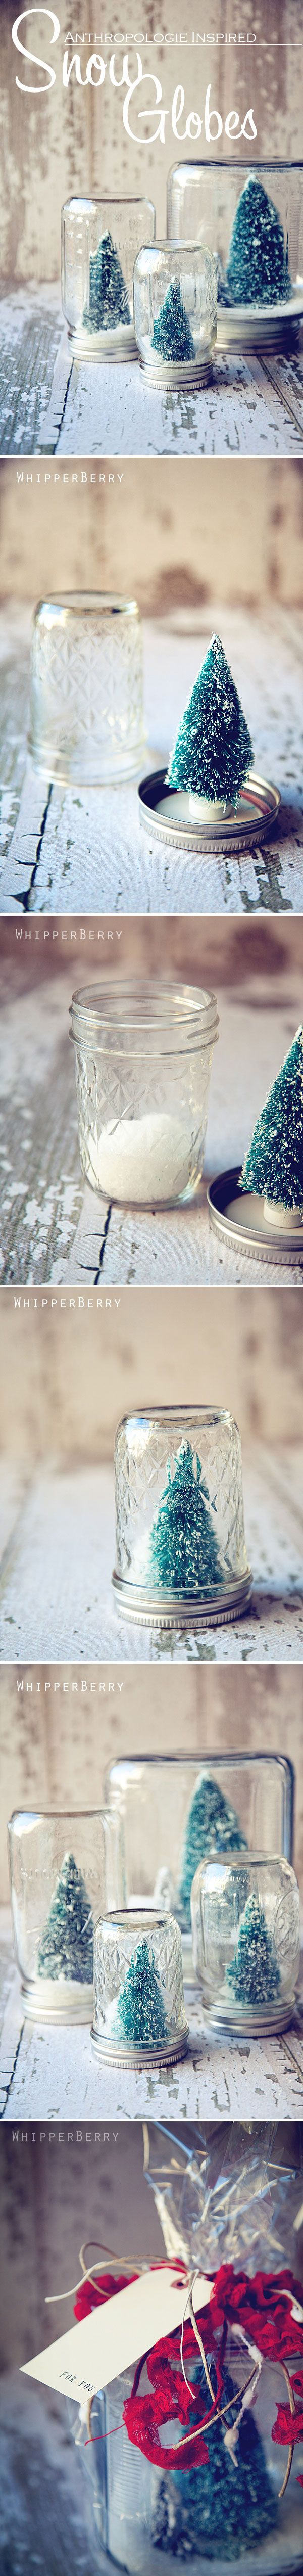 Inspired Snow Globes.. Kids would love making these! Going on the list of Christmas crafts for sure.